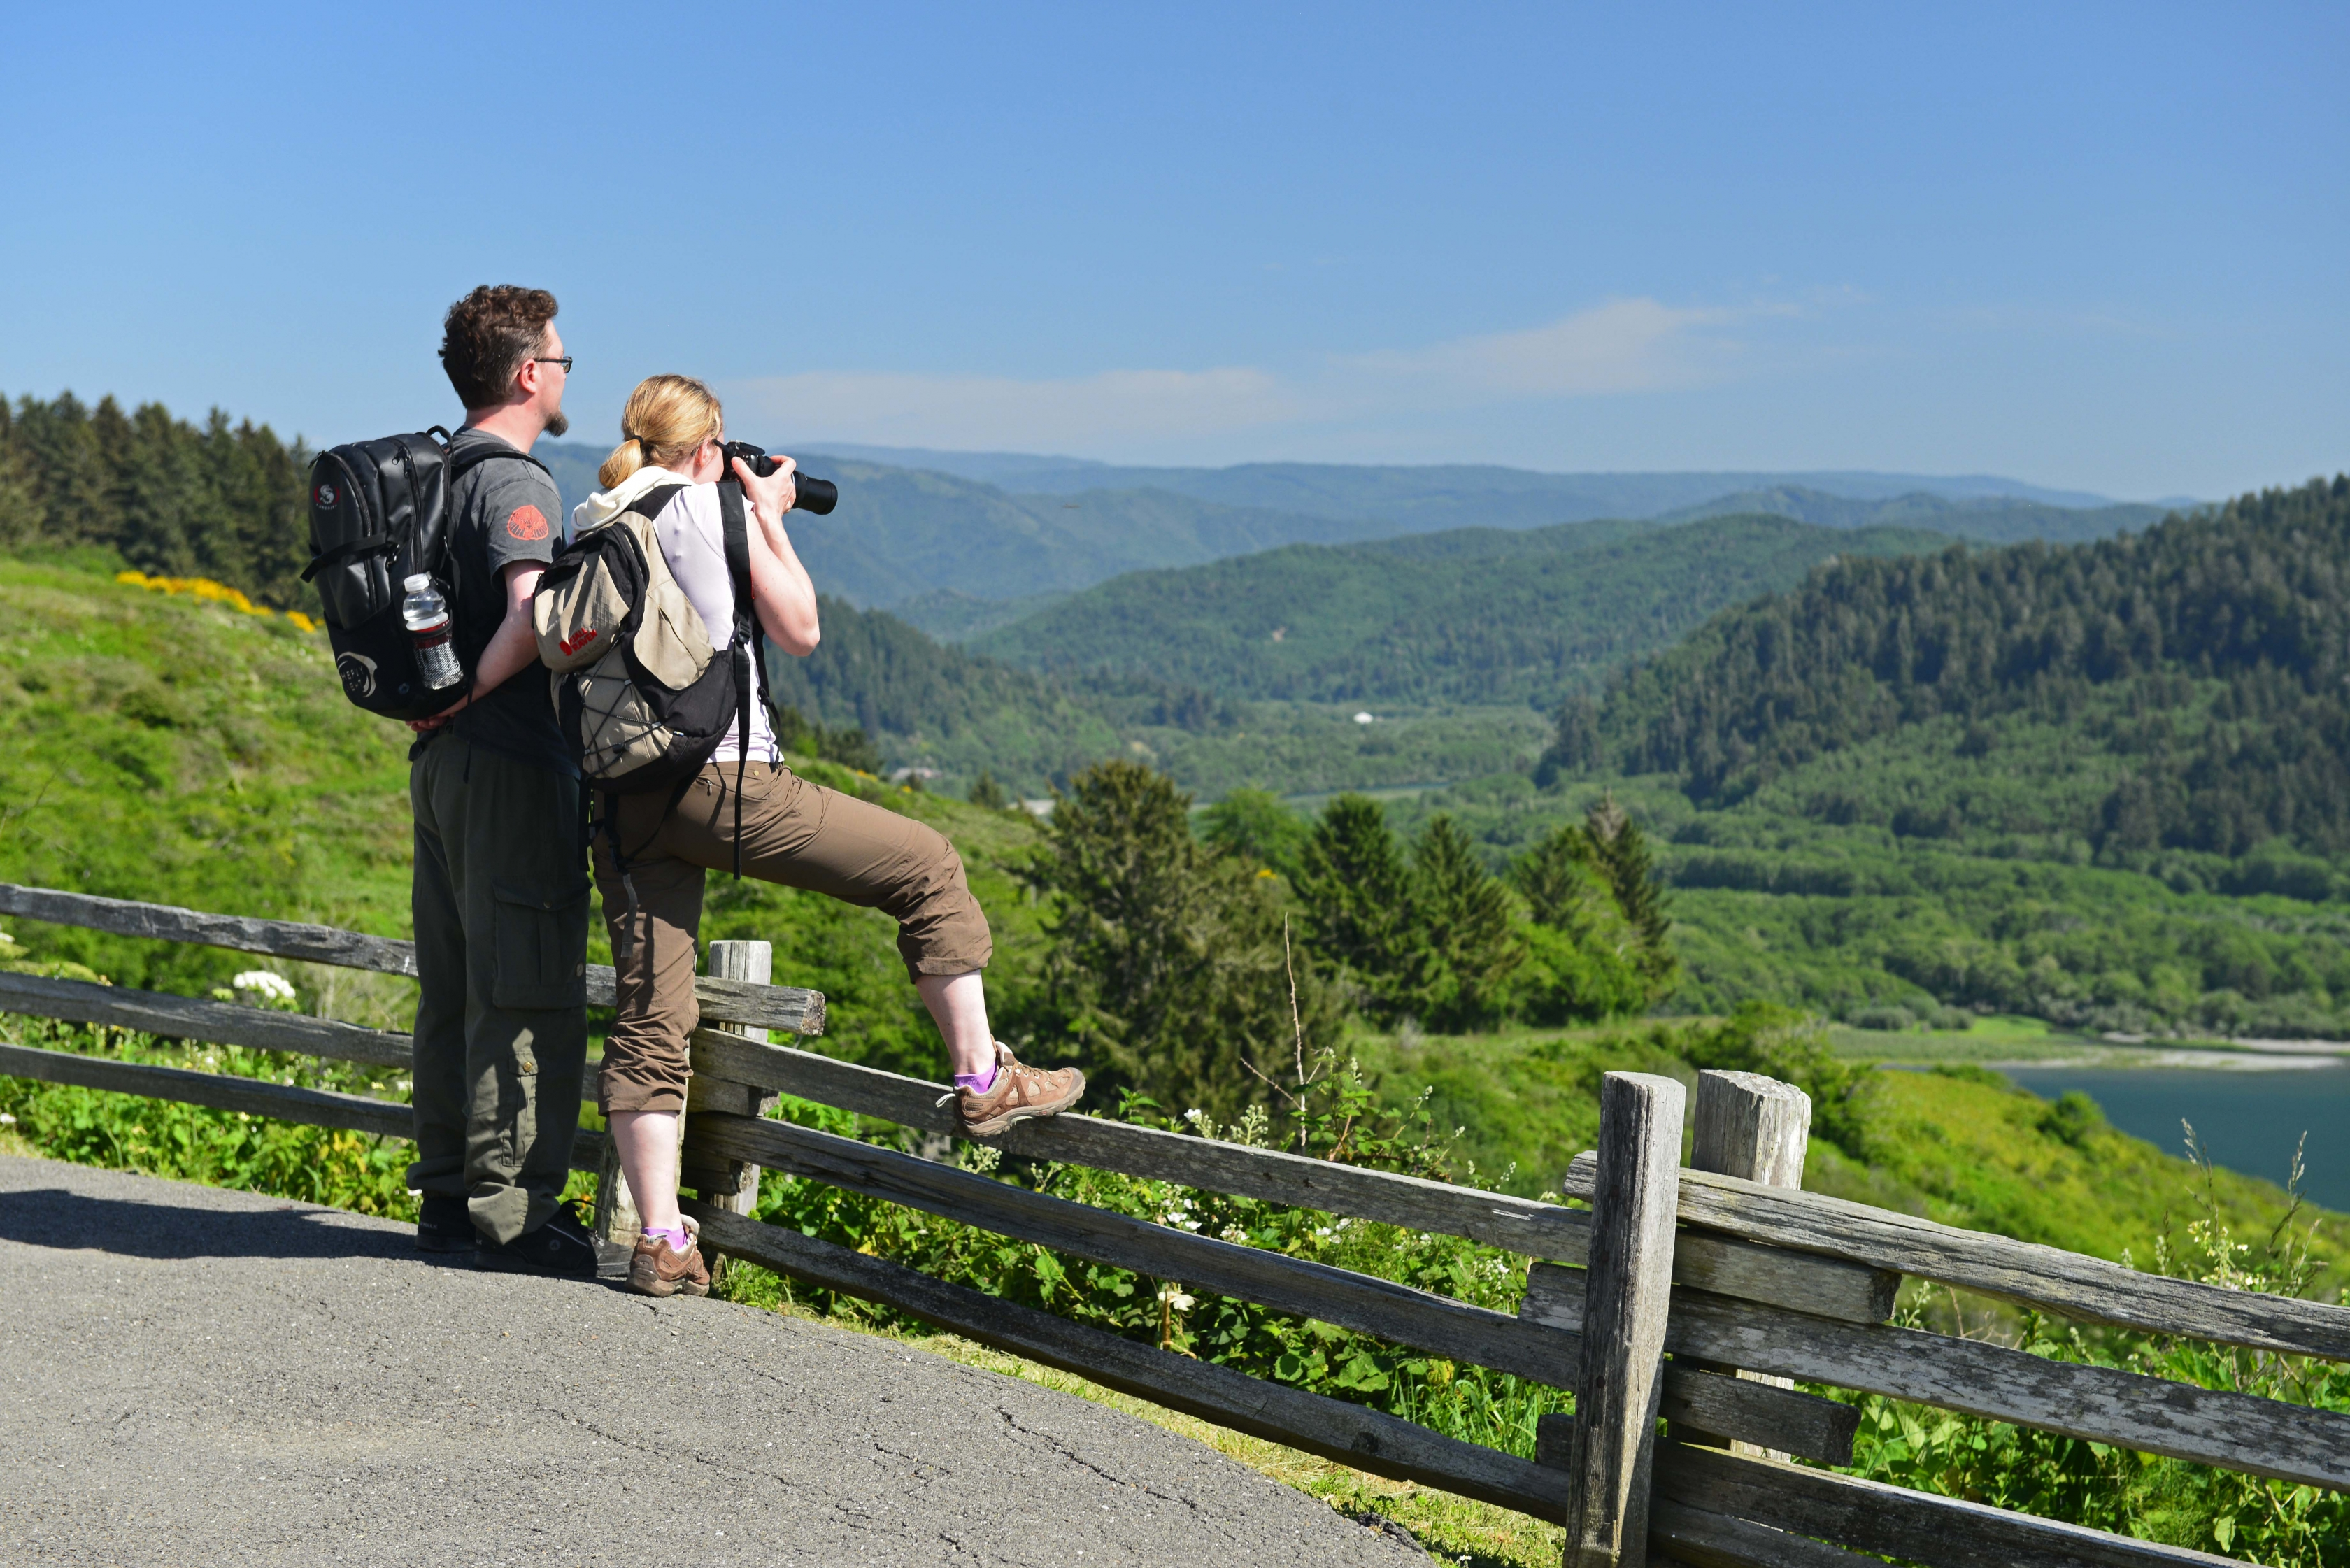 Visitors take in the scenery at Klamath River Overlook in the Redwoods.